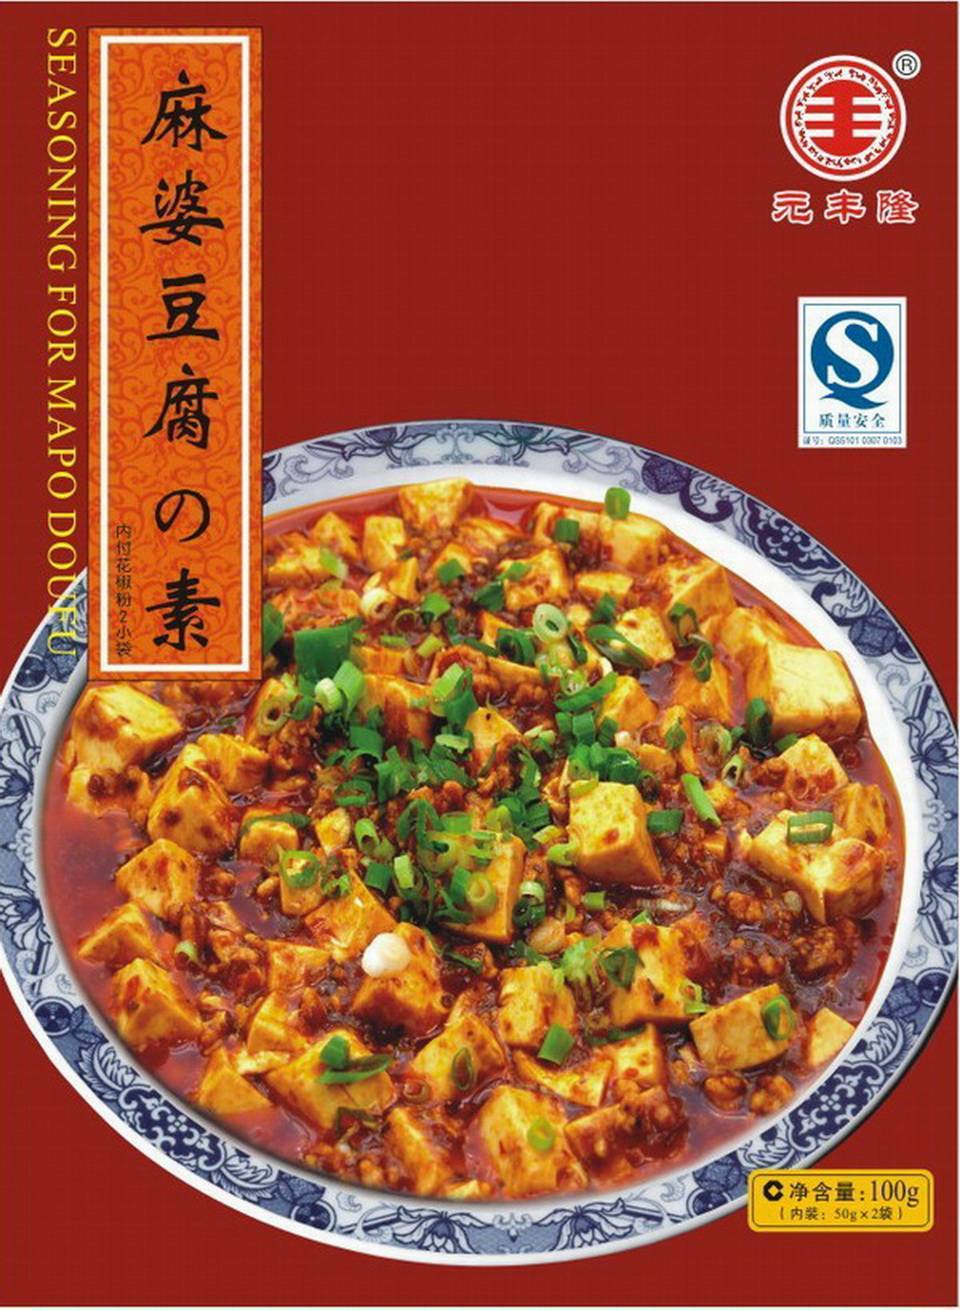 SEASONING FOR MAPO DOUFU